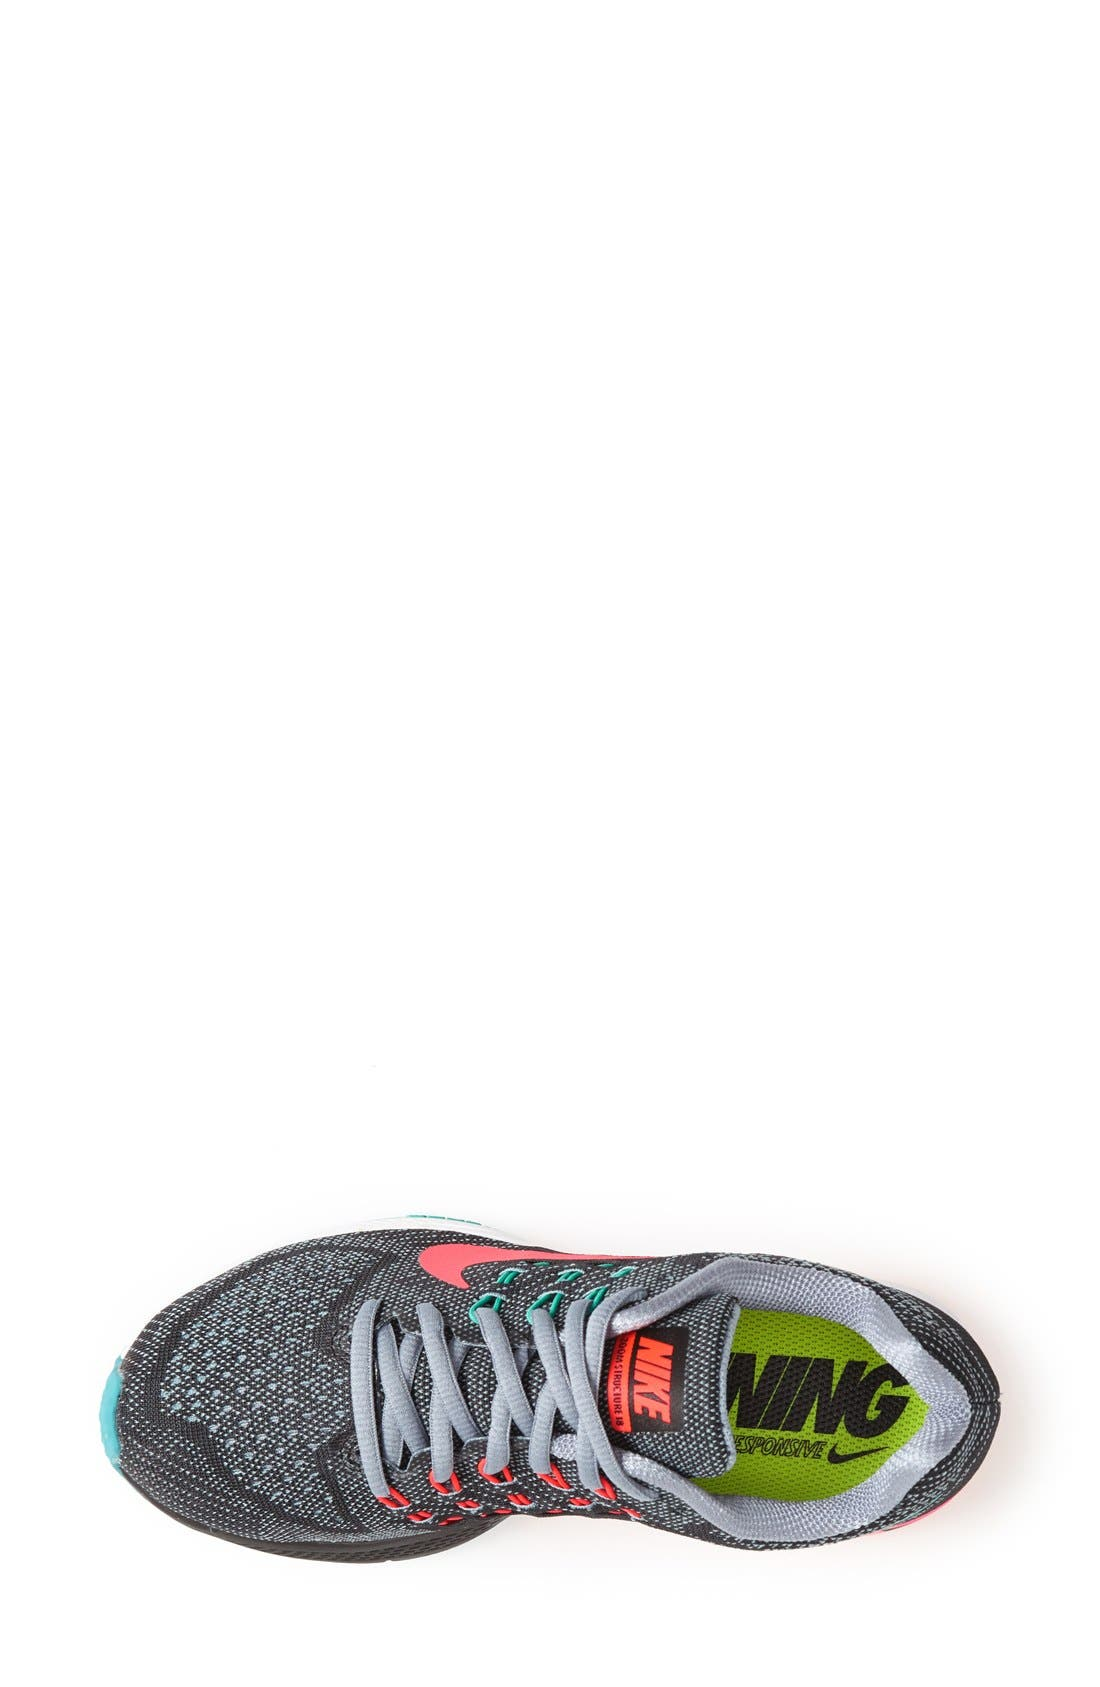 NIKE,                             'Air Zoom Structure 18' Running Shoe,                             Alternate thumbnail 4, color,                             001